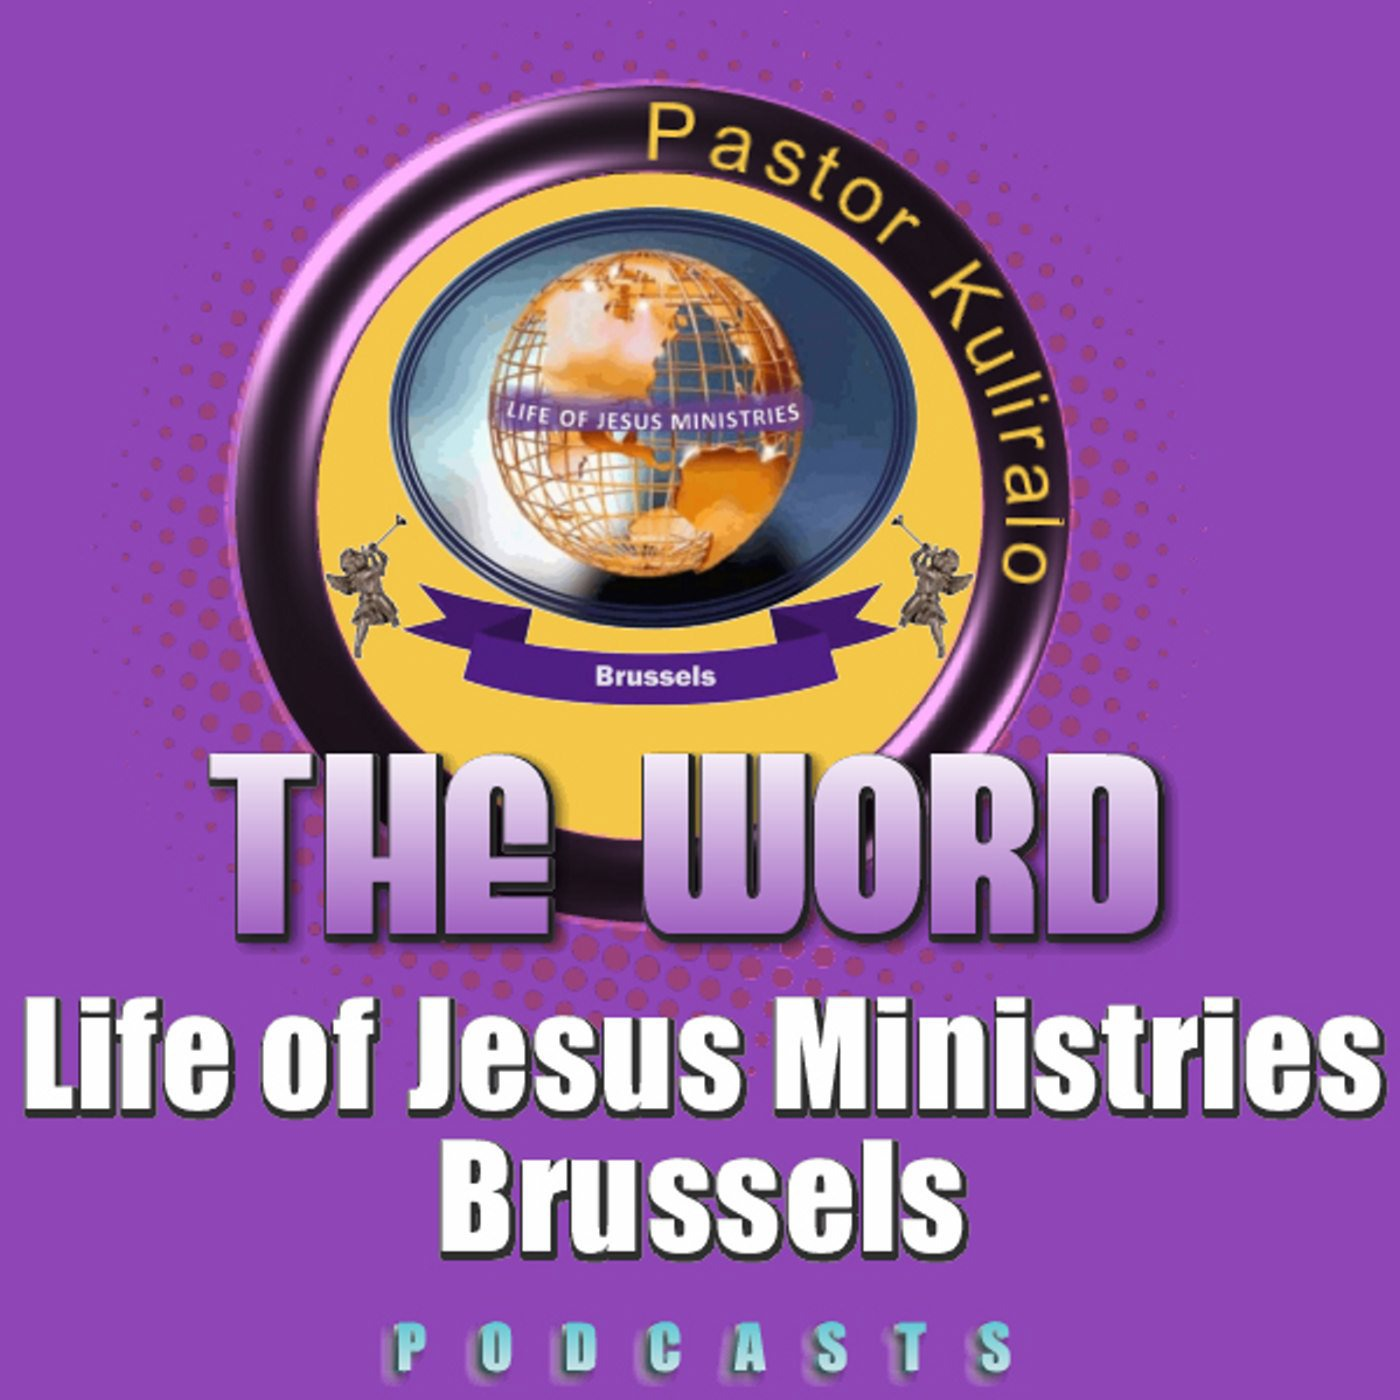 Life of Jesus Ministries Brussels' Podcast